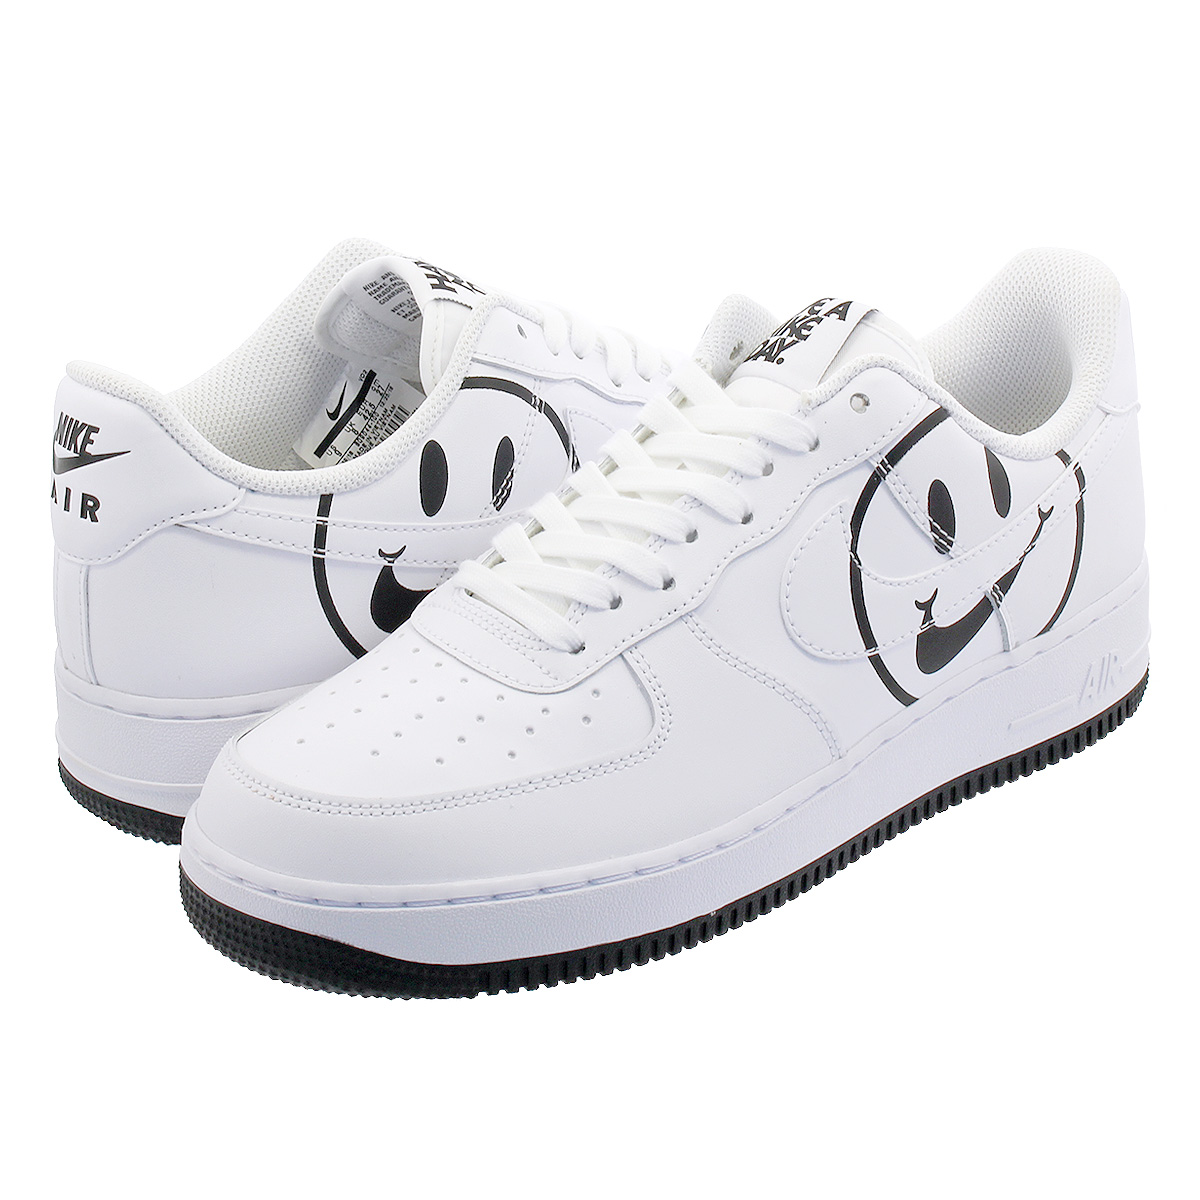 【ビッグ・スモールサイズ】 NIKE AIR FORCE 1 '07 LV8 ND 【HAVE A NIKE DAY】 ナイキ エア フォース 1 '07 LV8 ND WHITE/WHITE/BLACK bq9044-100